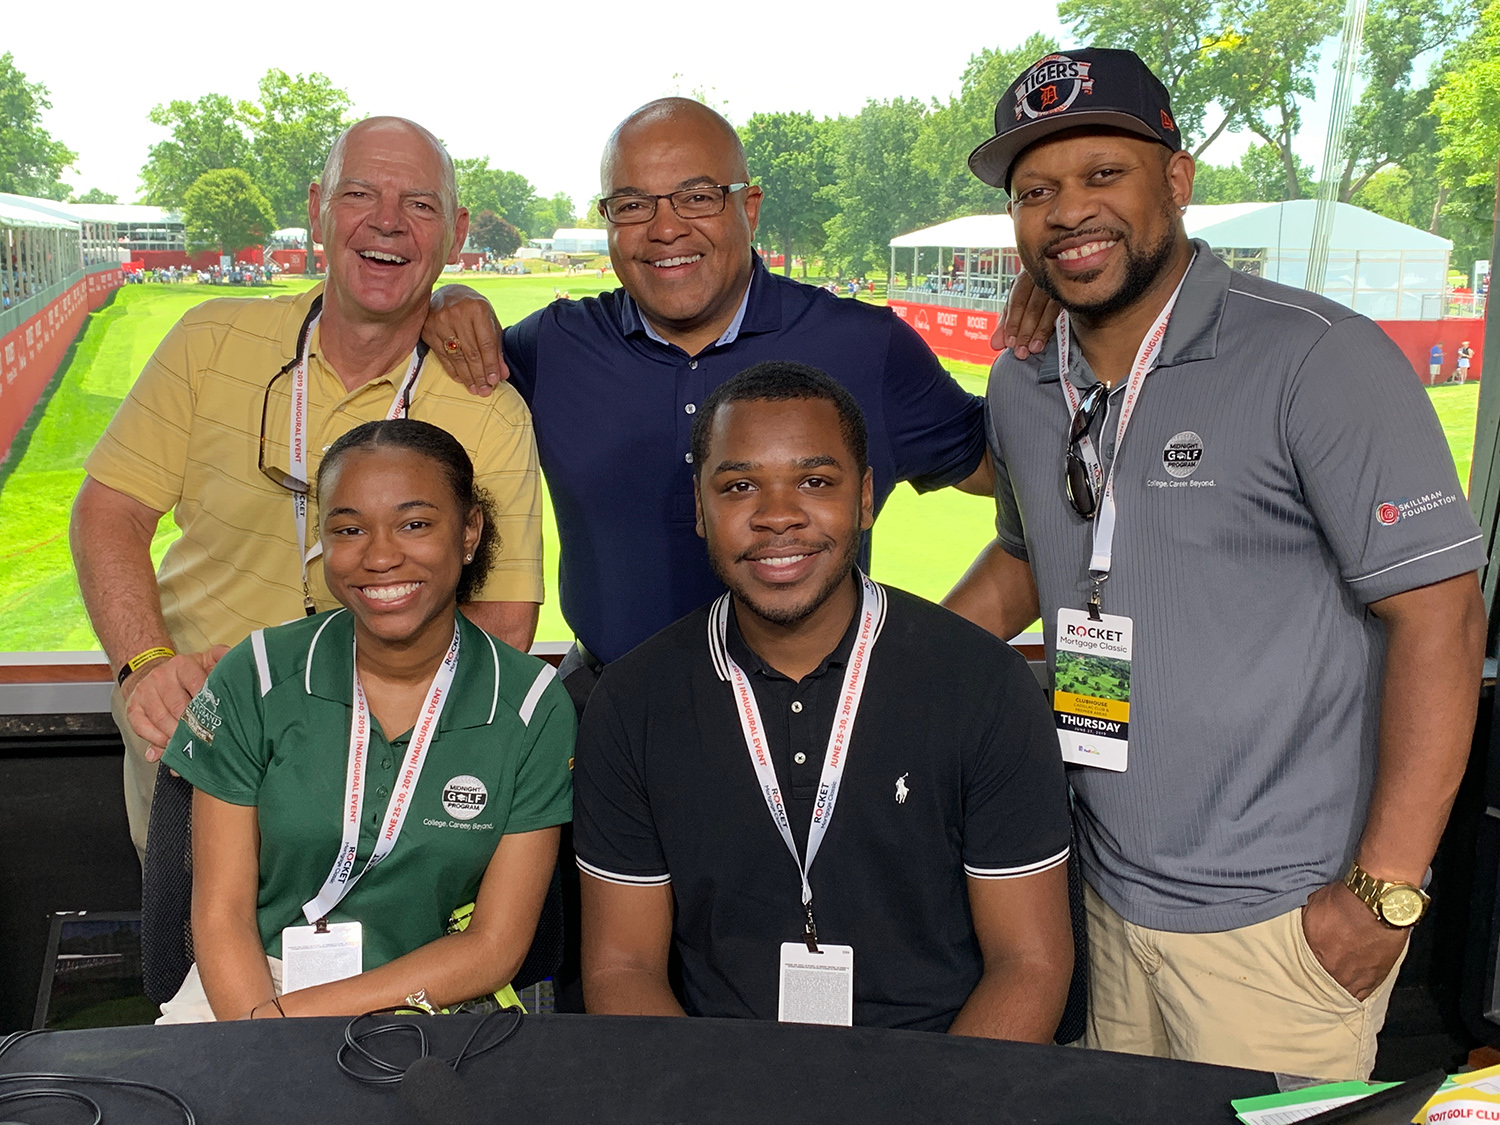 Aspiring sports journalists and MGP alumni, Janay Pope and Zuri Cheathem, had a chance to meet broadcasting legend and NBC Sports' Mike Tirico at the Rocket Mortgage Classic. Thanks to Mike for inspiring our students and to Russ Chavey for making this opportunity possible!